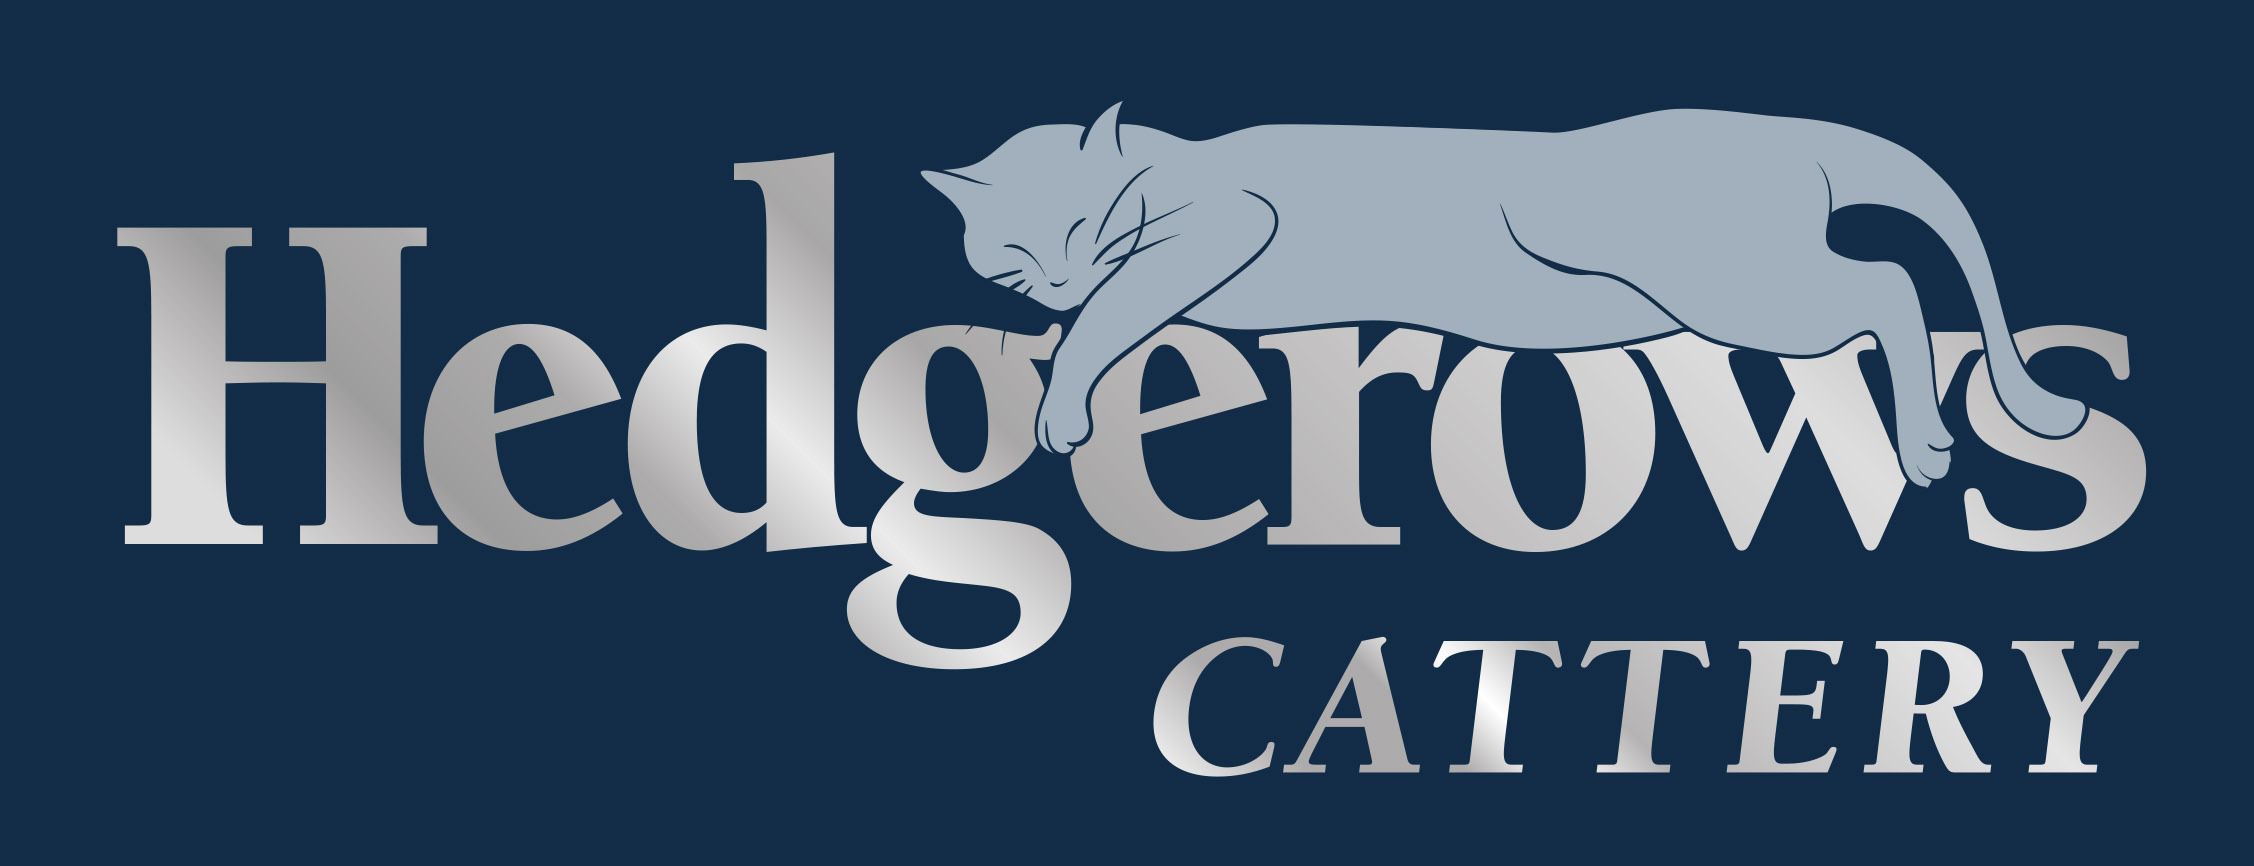 Hedgerows Cattery